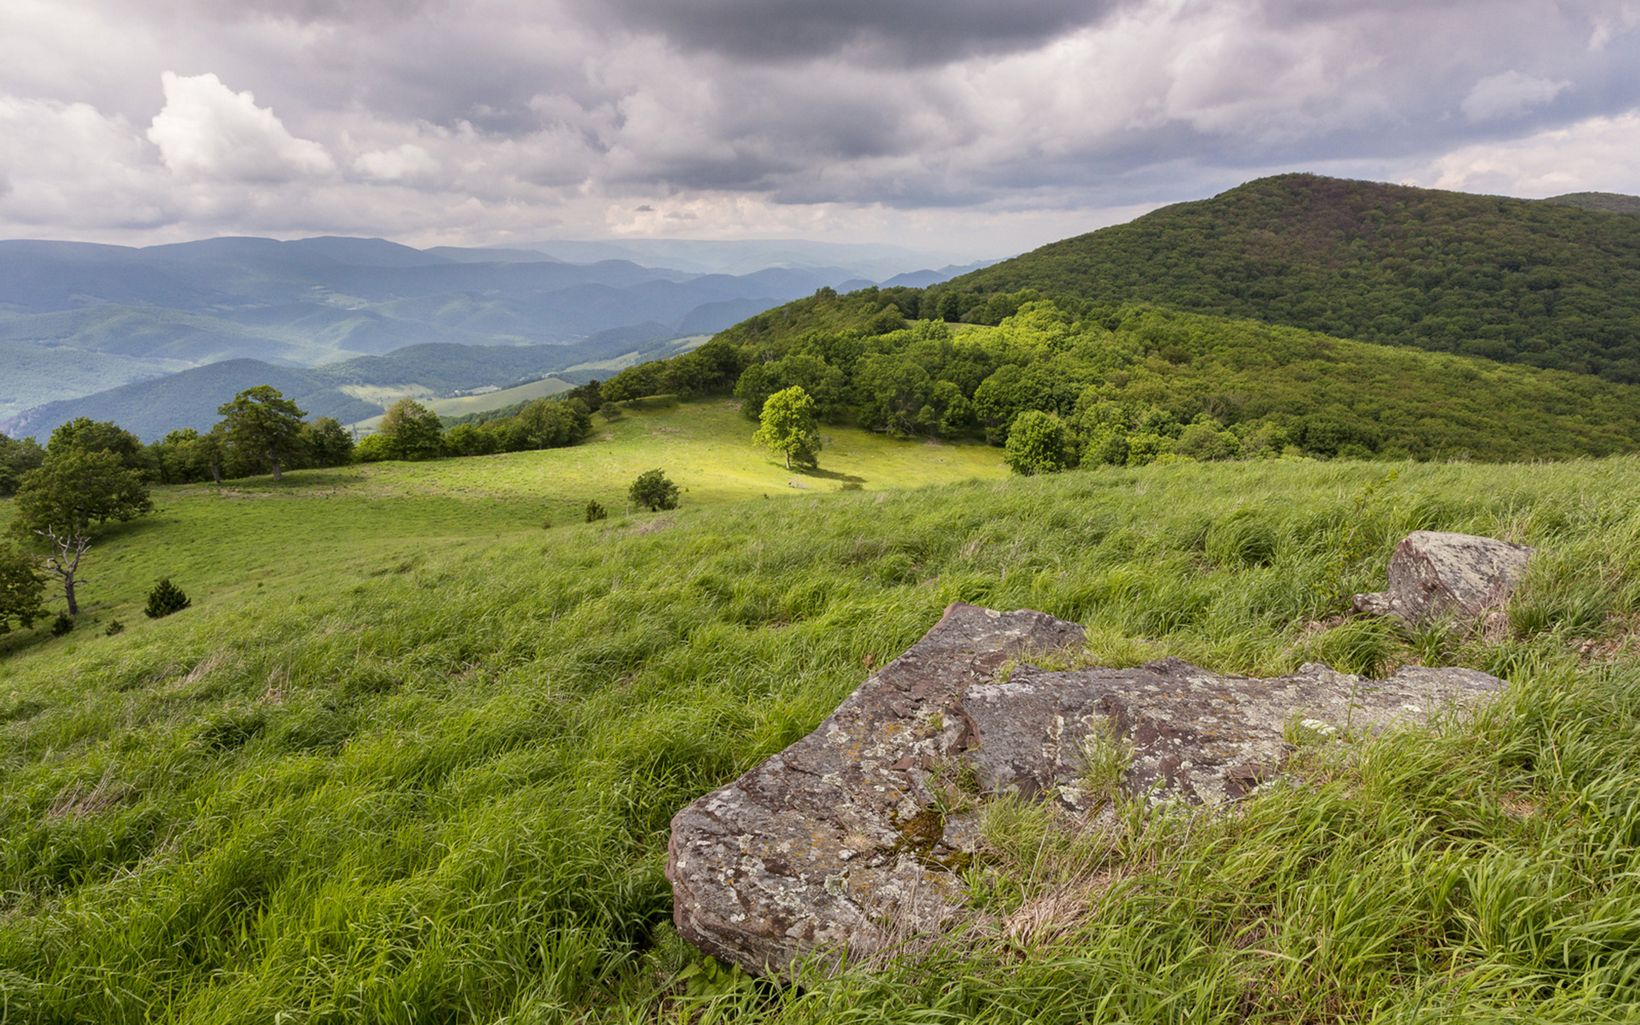 View of  TNC's Pike Knob Preserve in West Virginia amid